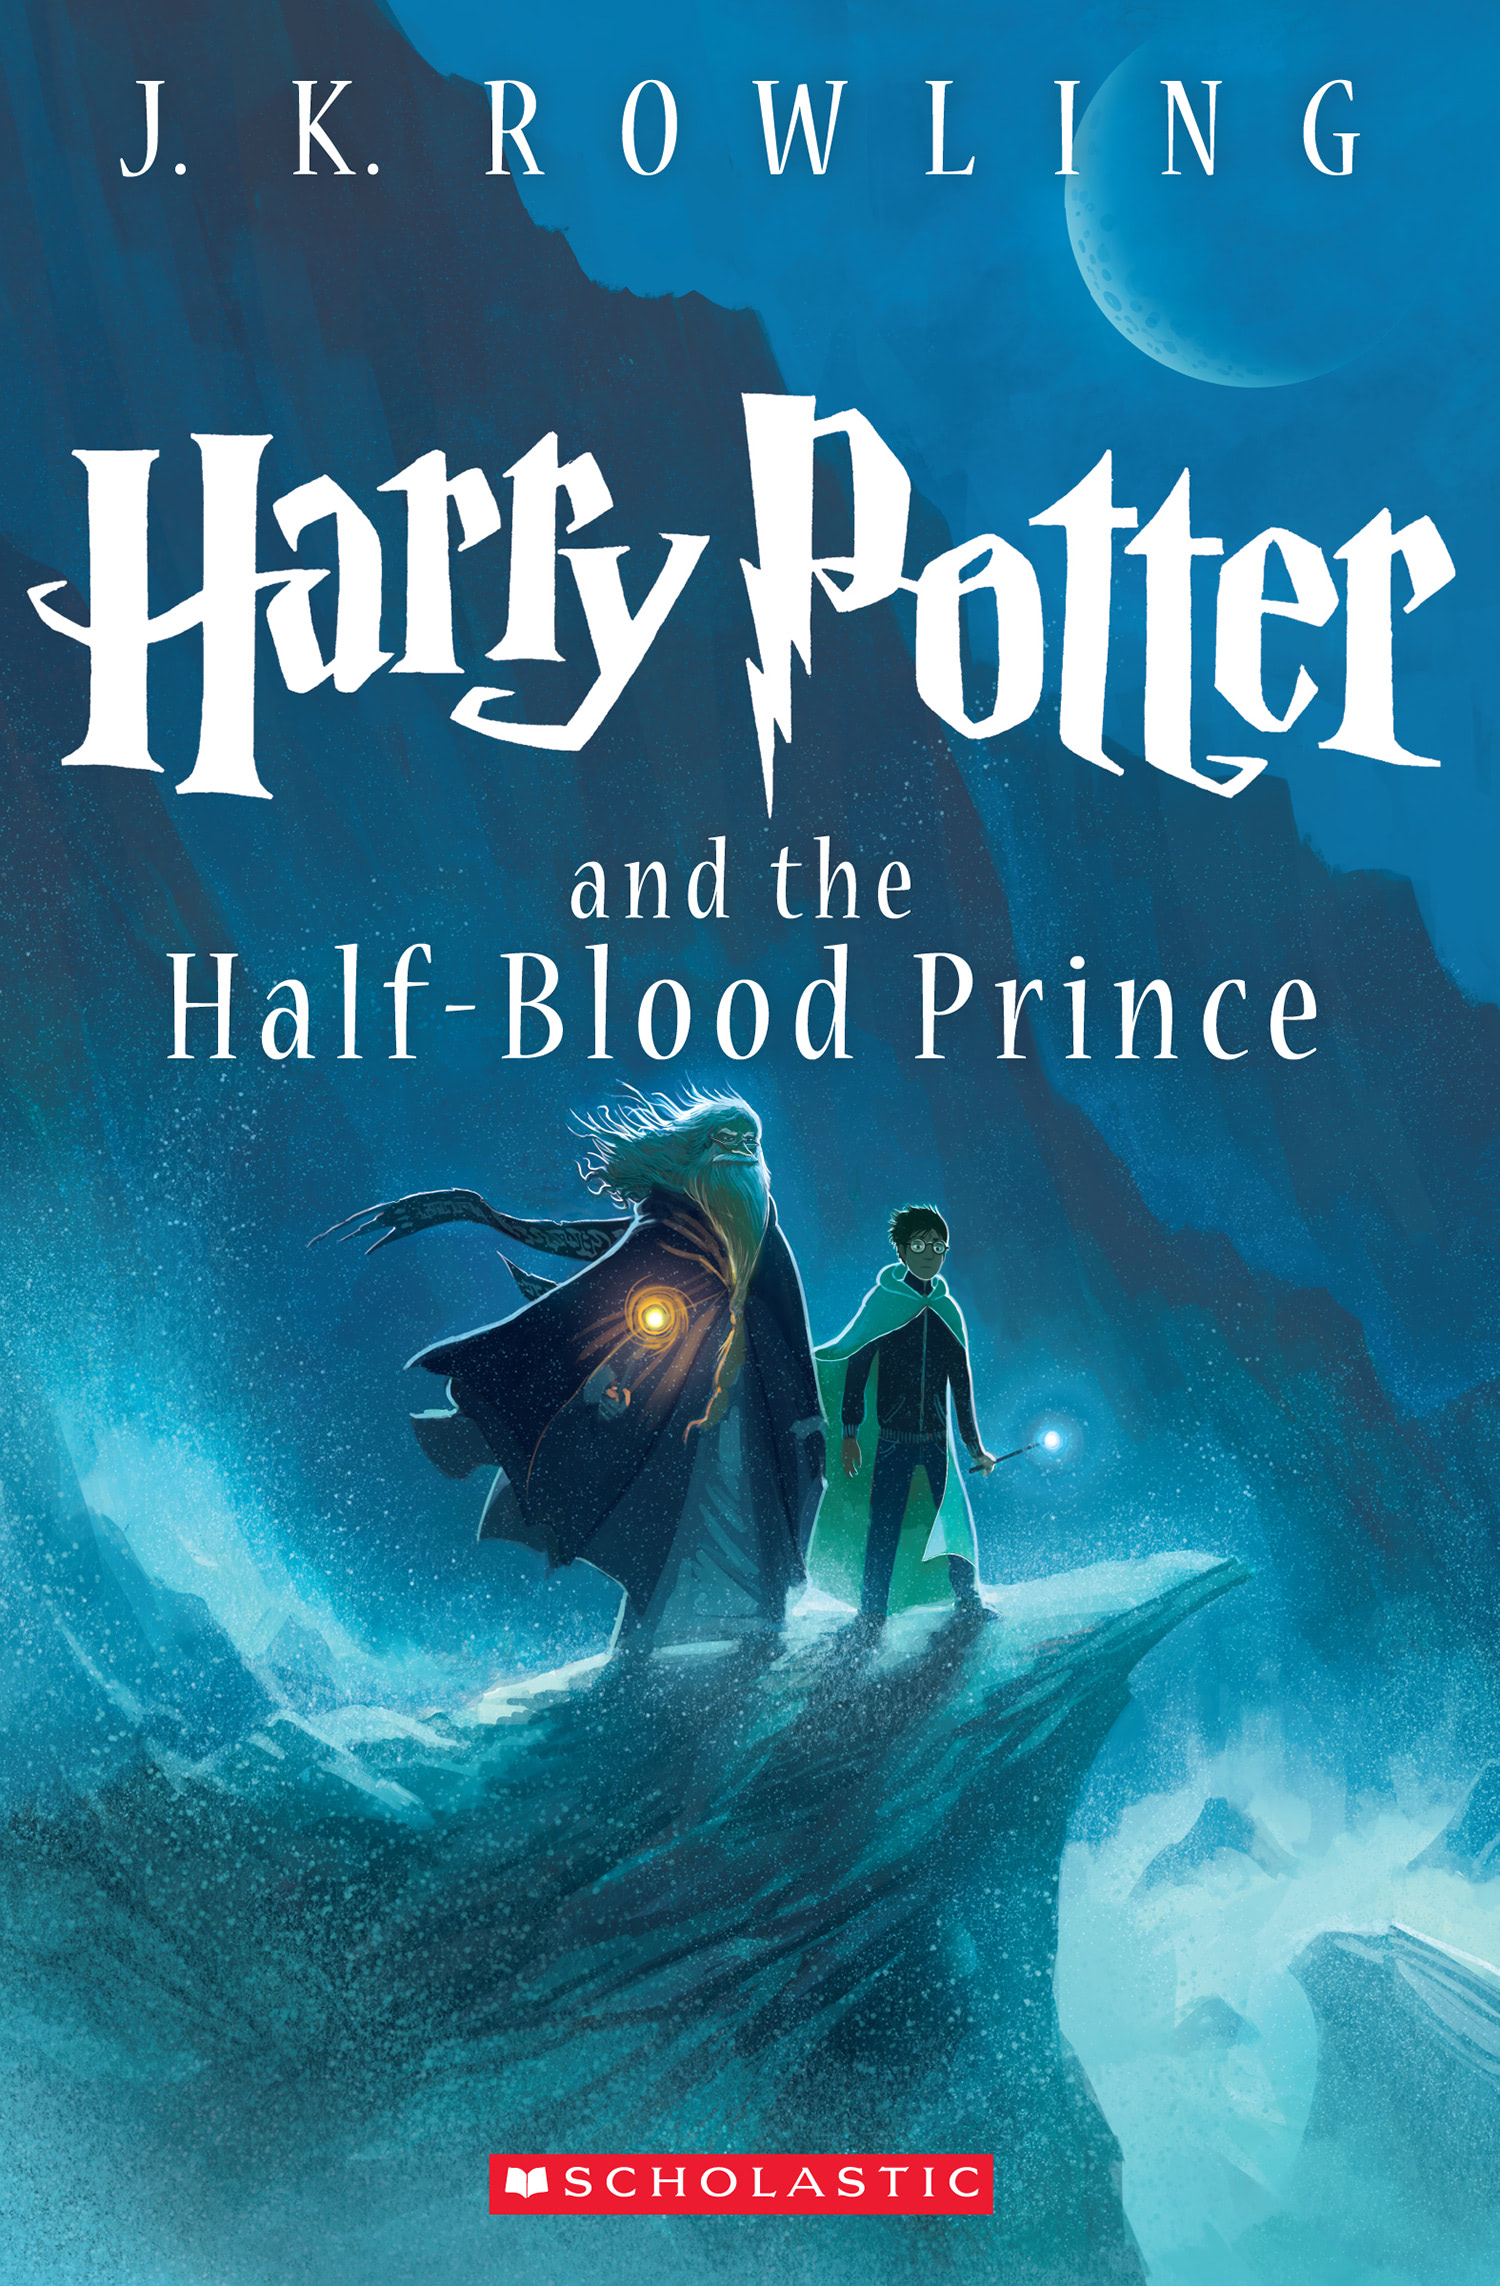 'Half-Blood Prince' US children's edition (2013)